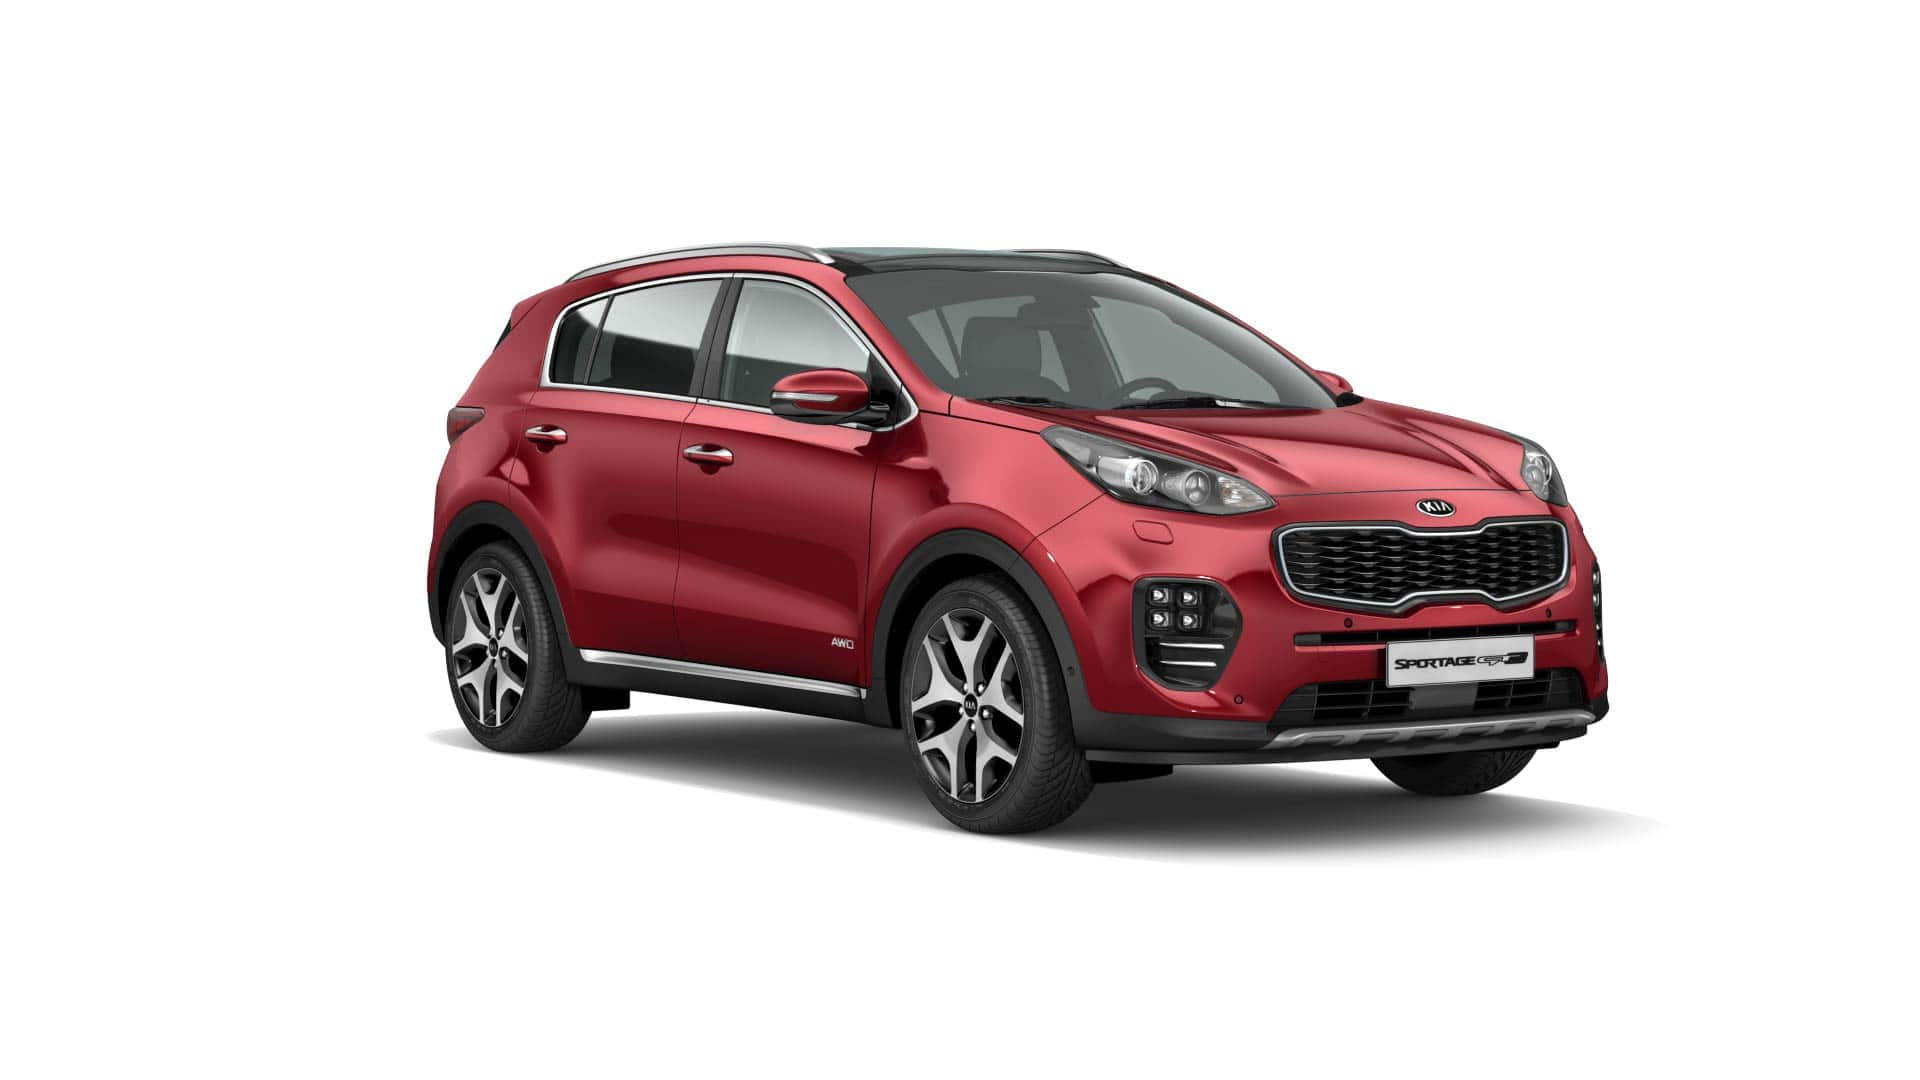 informazioni kia sportage kia motors italia. Black Bedroom Furniture Sets. Home Design Ideas